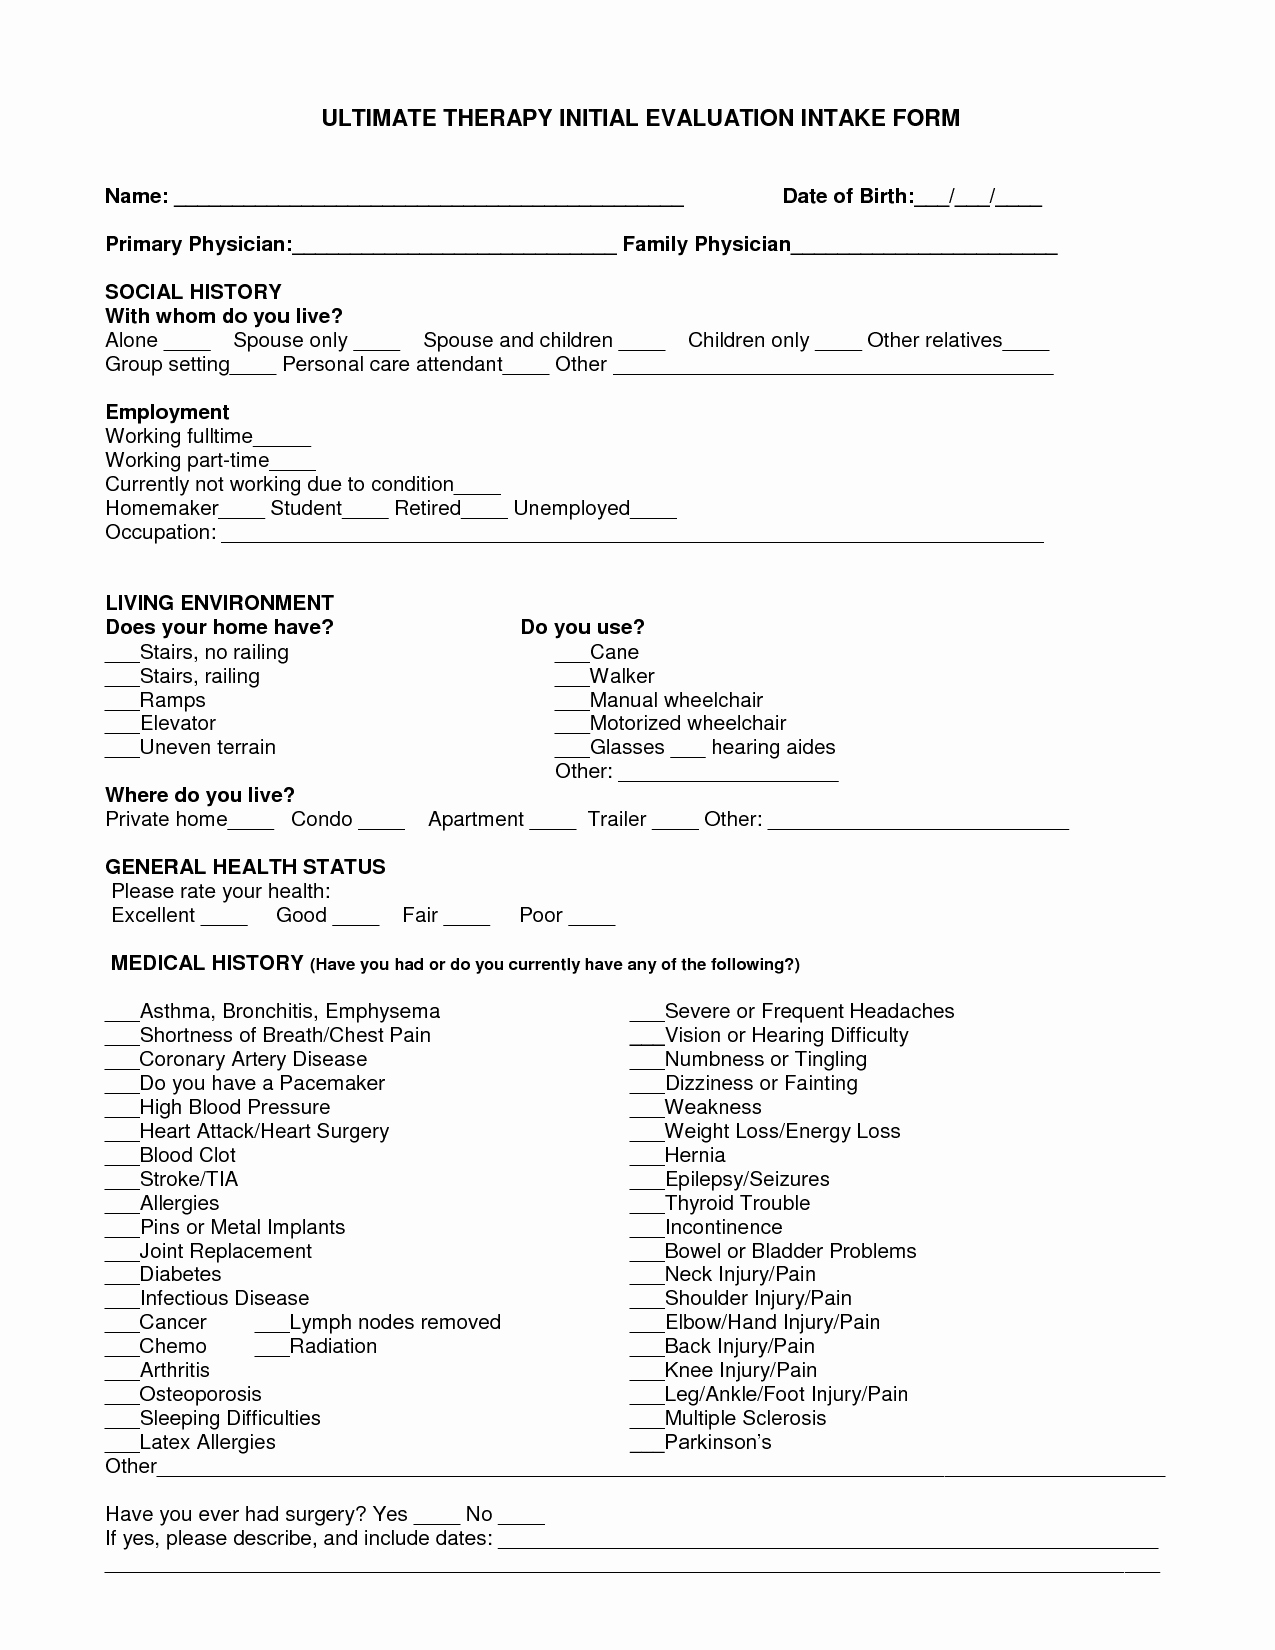 Physical therapy Evaluation Templates Lovely Best S Of Pt Initial Evaluation Samples Sheet